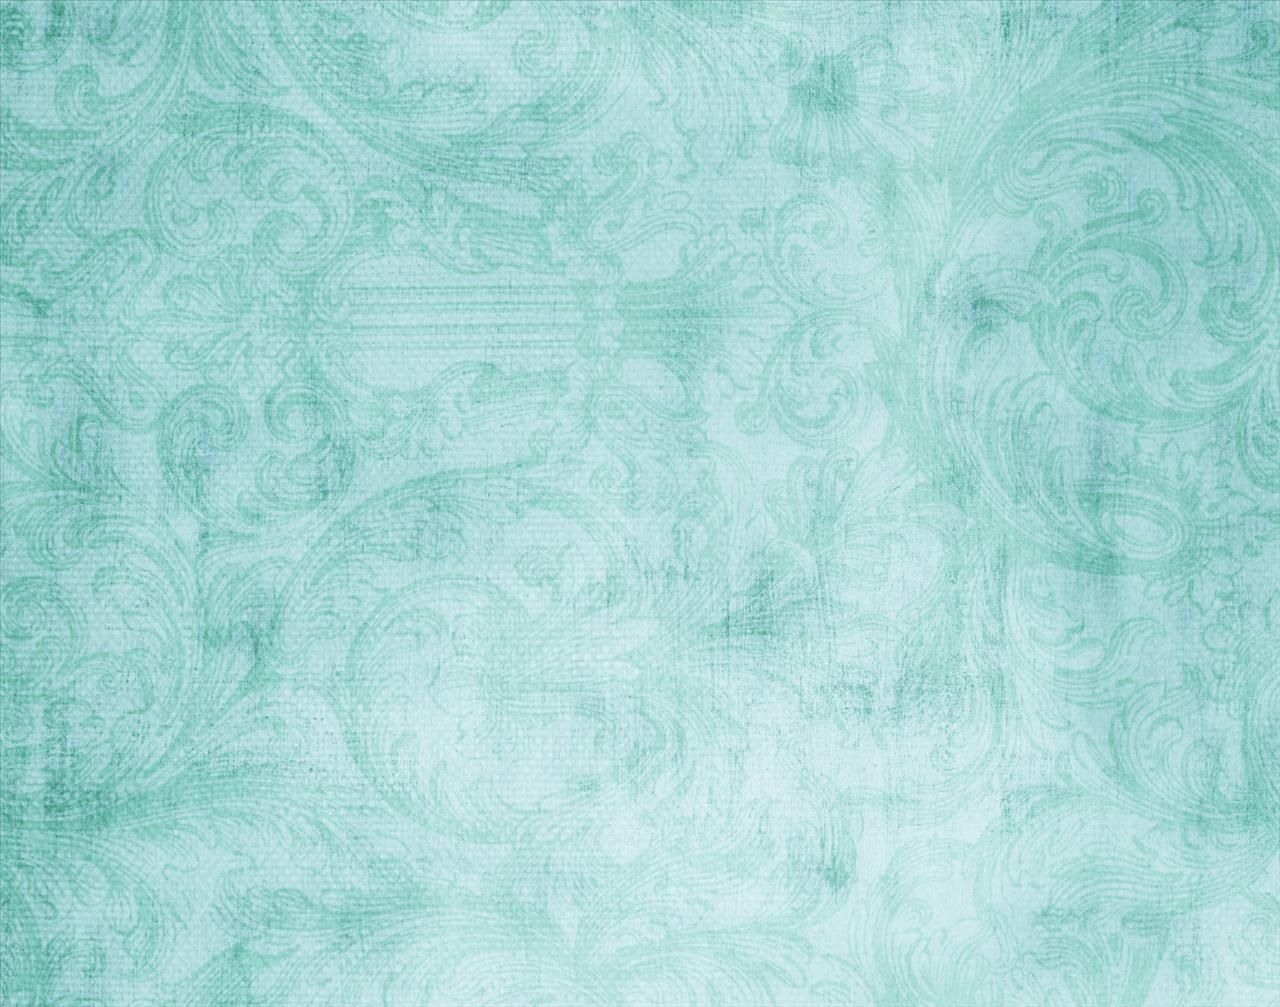 Free backgrounds google search verde tiffany - Turquoise wallpaper pinterest ...